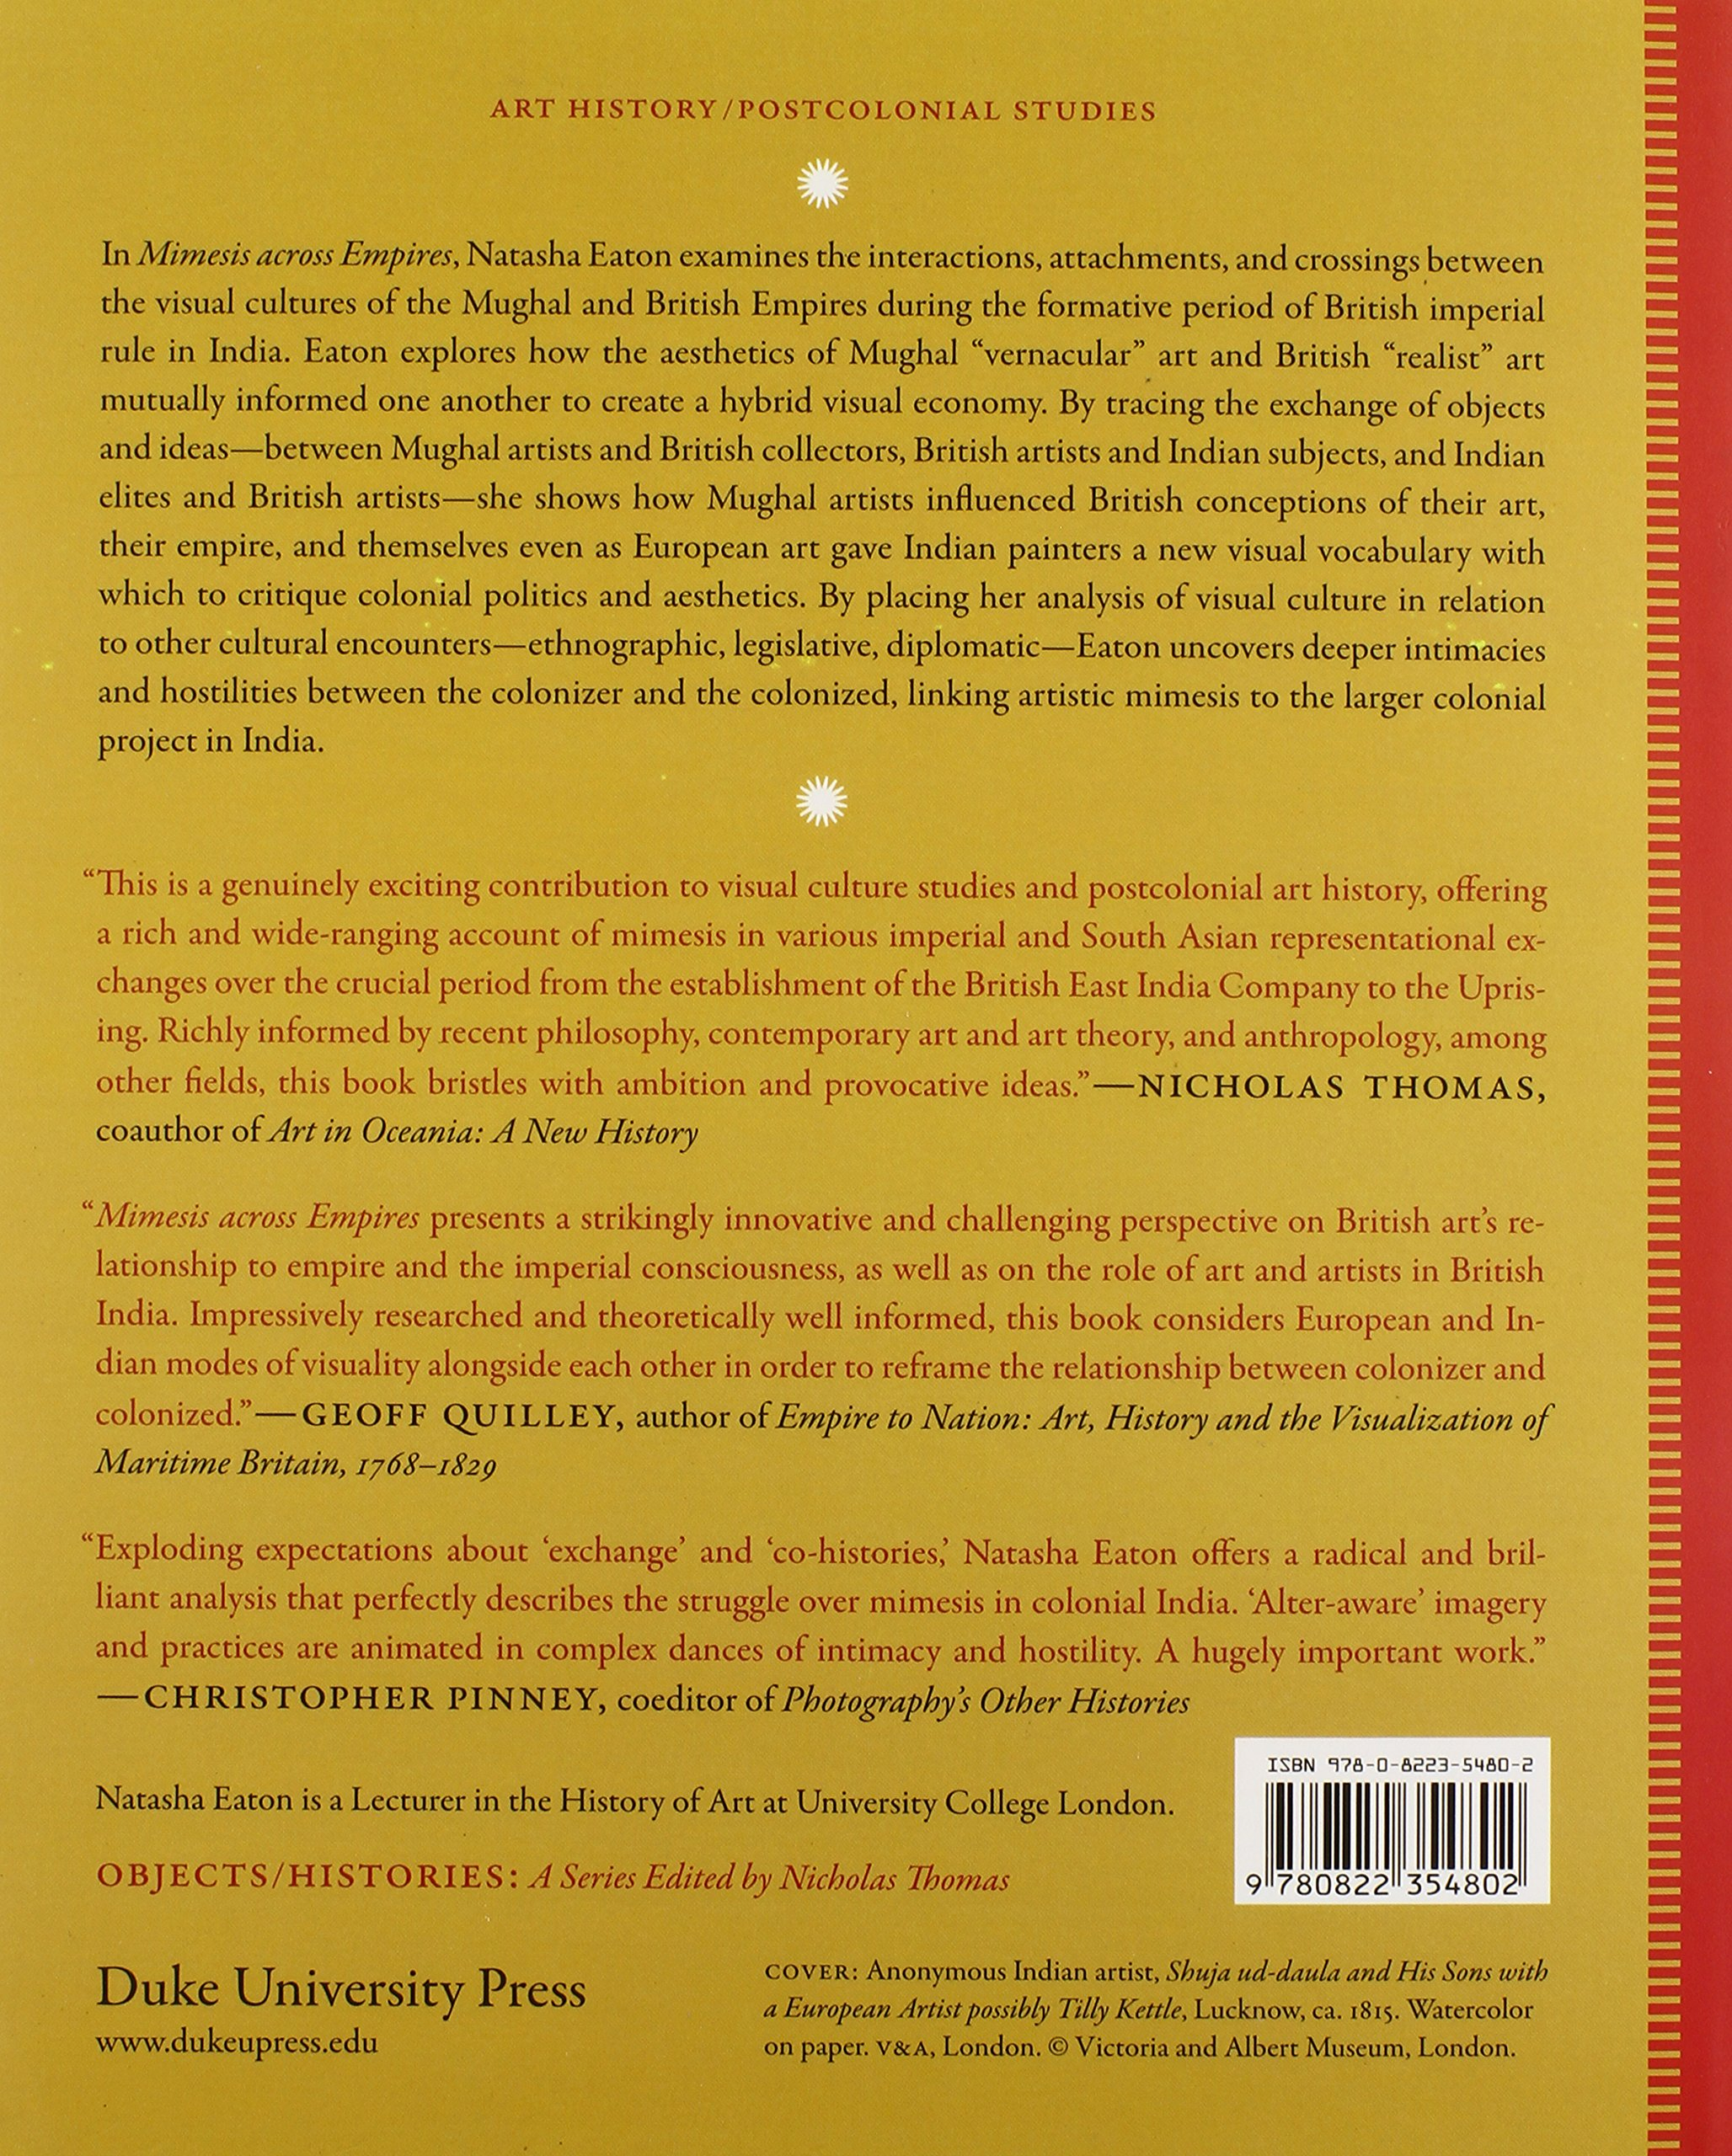 Color art and empire by natasha eaton - Mimesis Across Empires Artworks And Networks In India 1765 1860 Objects Histories Natasha Eaton 9780822354802 Amazon Com Books